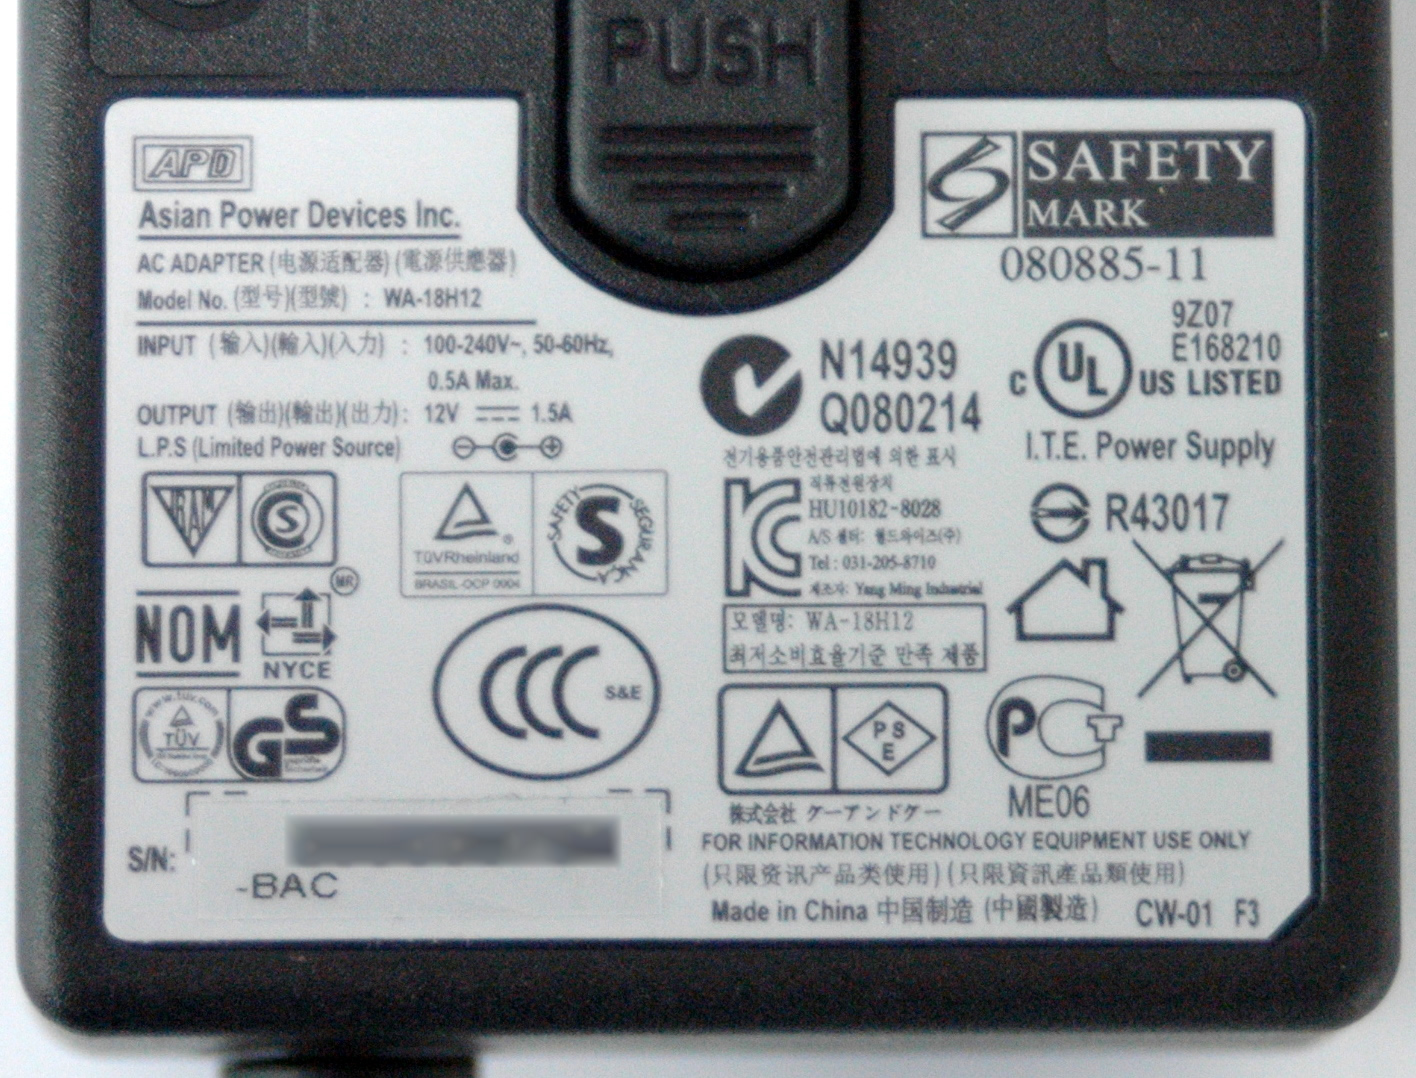 How Do I Identify / Differentiate Between Seagate External Power Supplies?